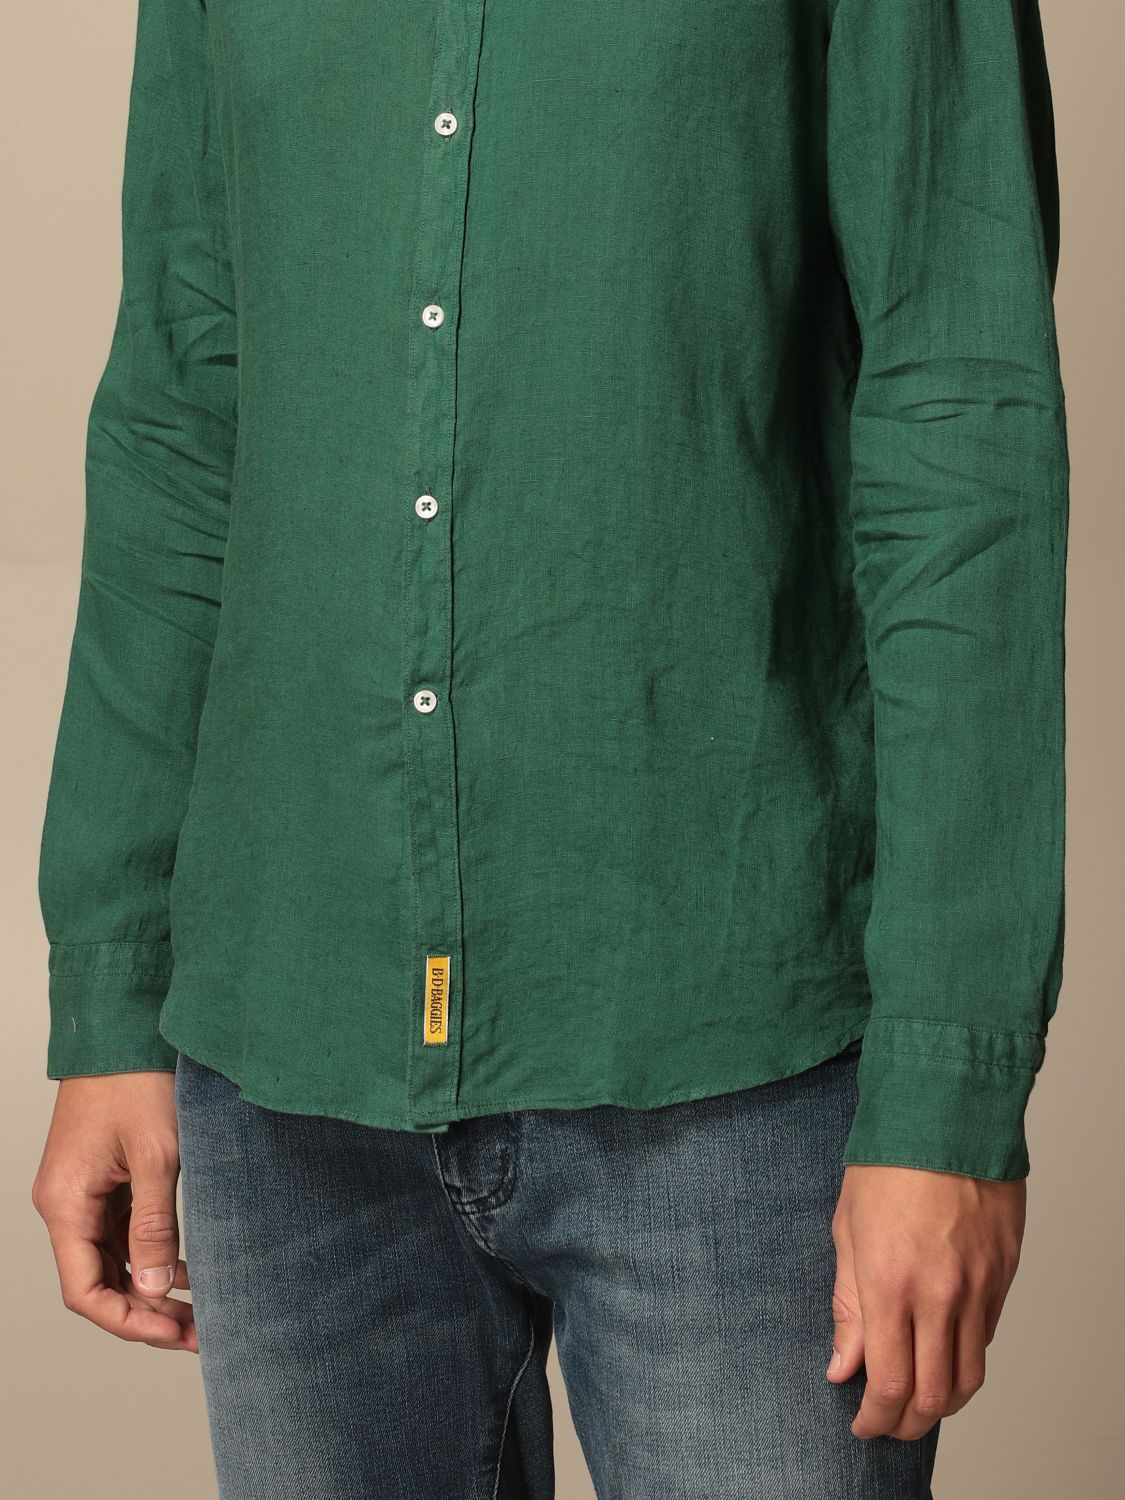 Chemise An American Tradition: Chemise homme Bd Baggies vert sapin 3